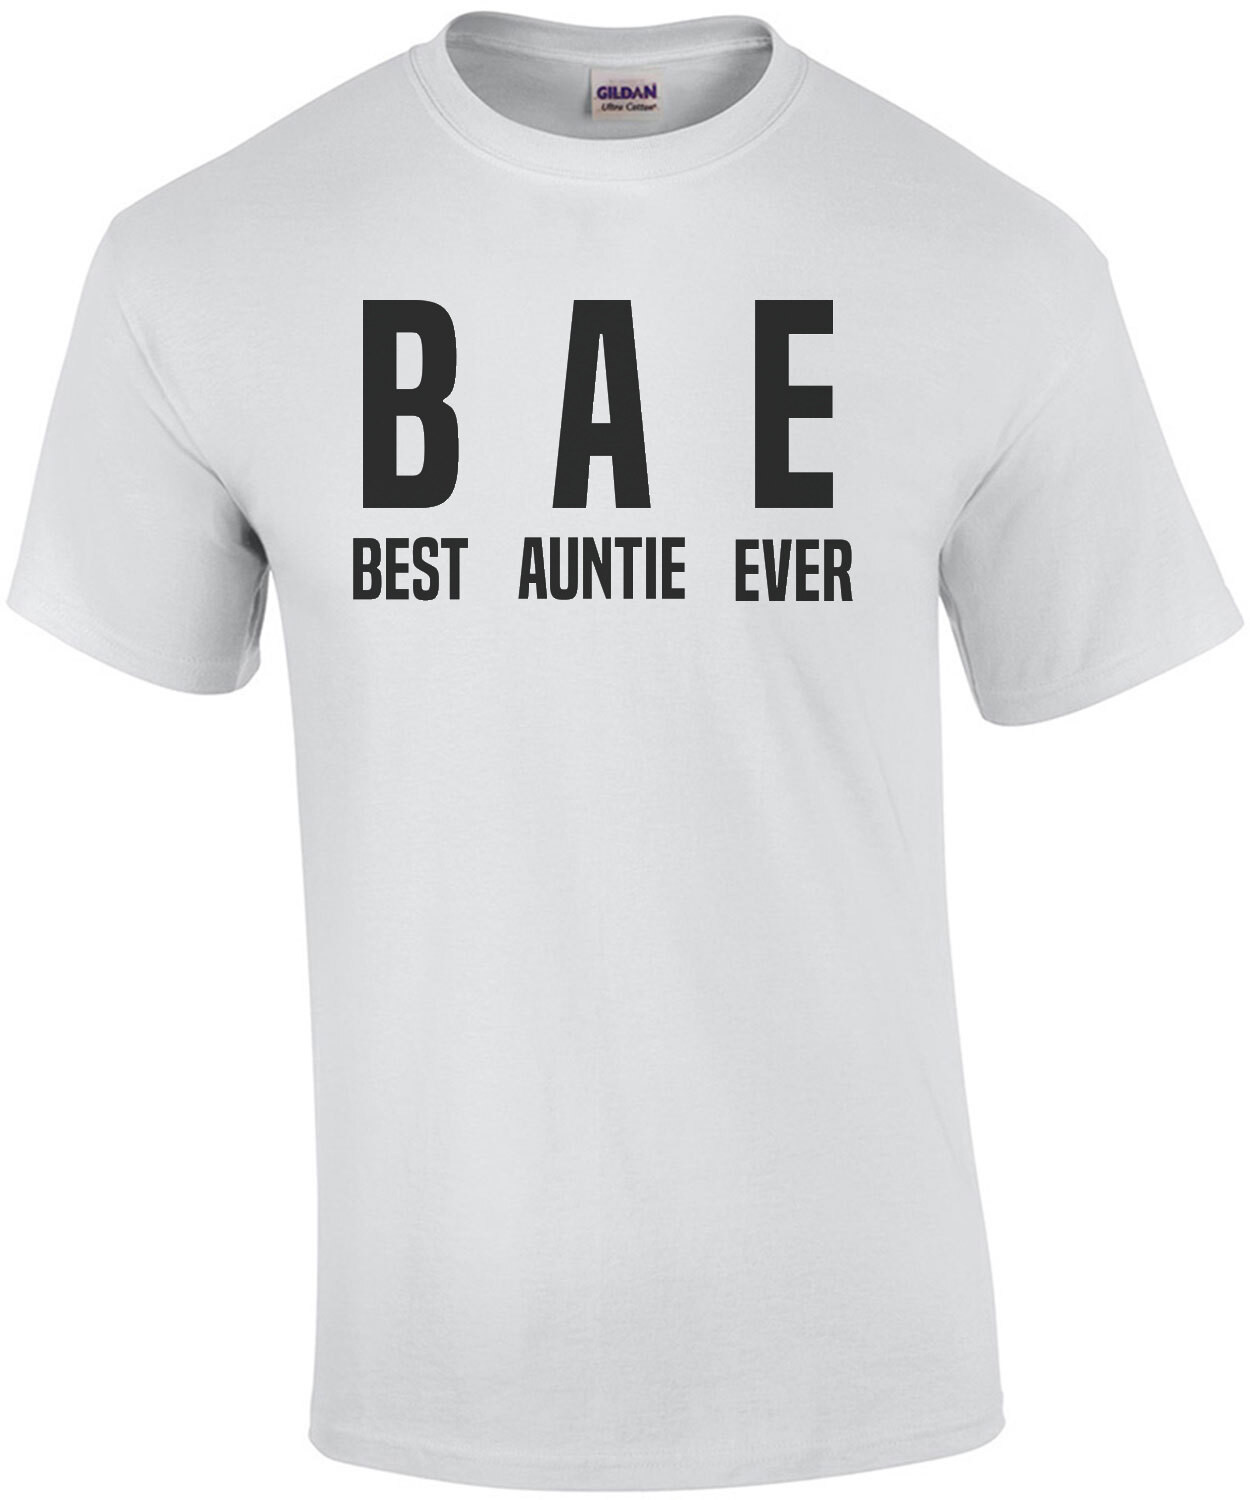 BAE - Best Aunt Ever - Funny Aunt T-Shirt